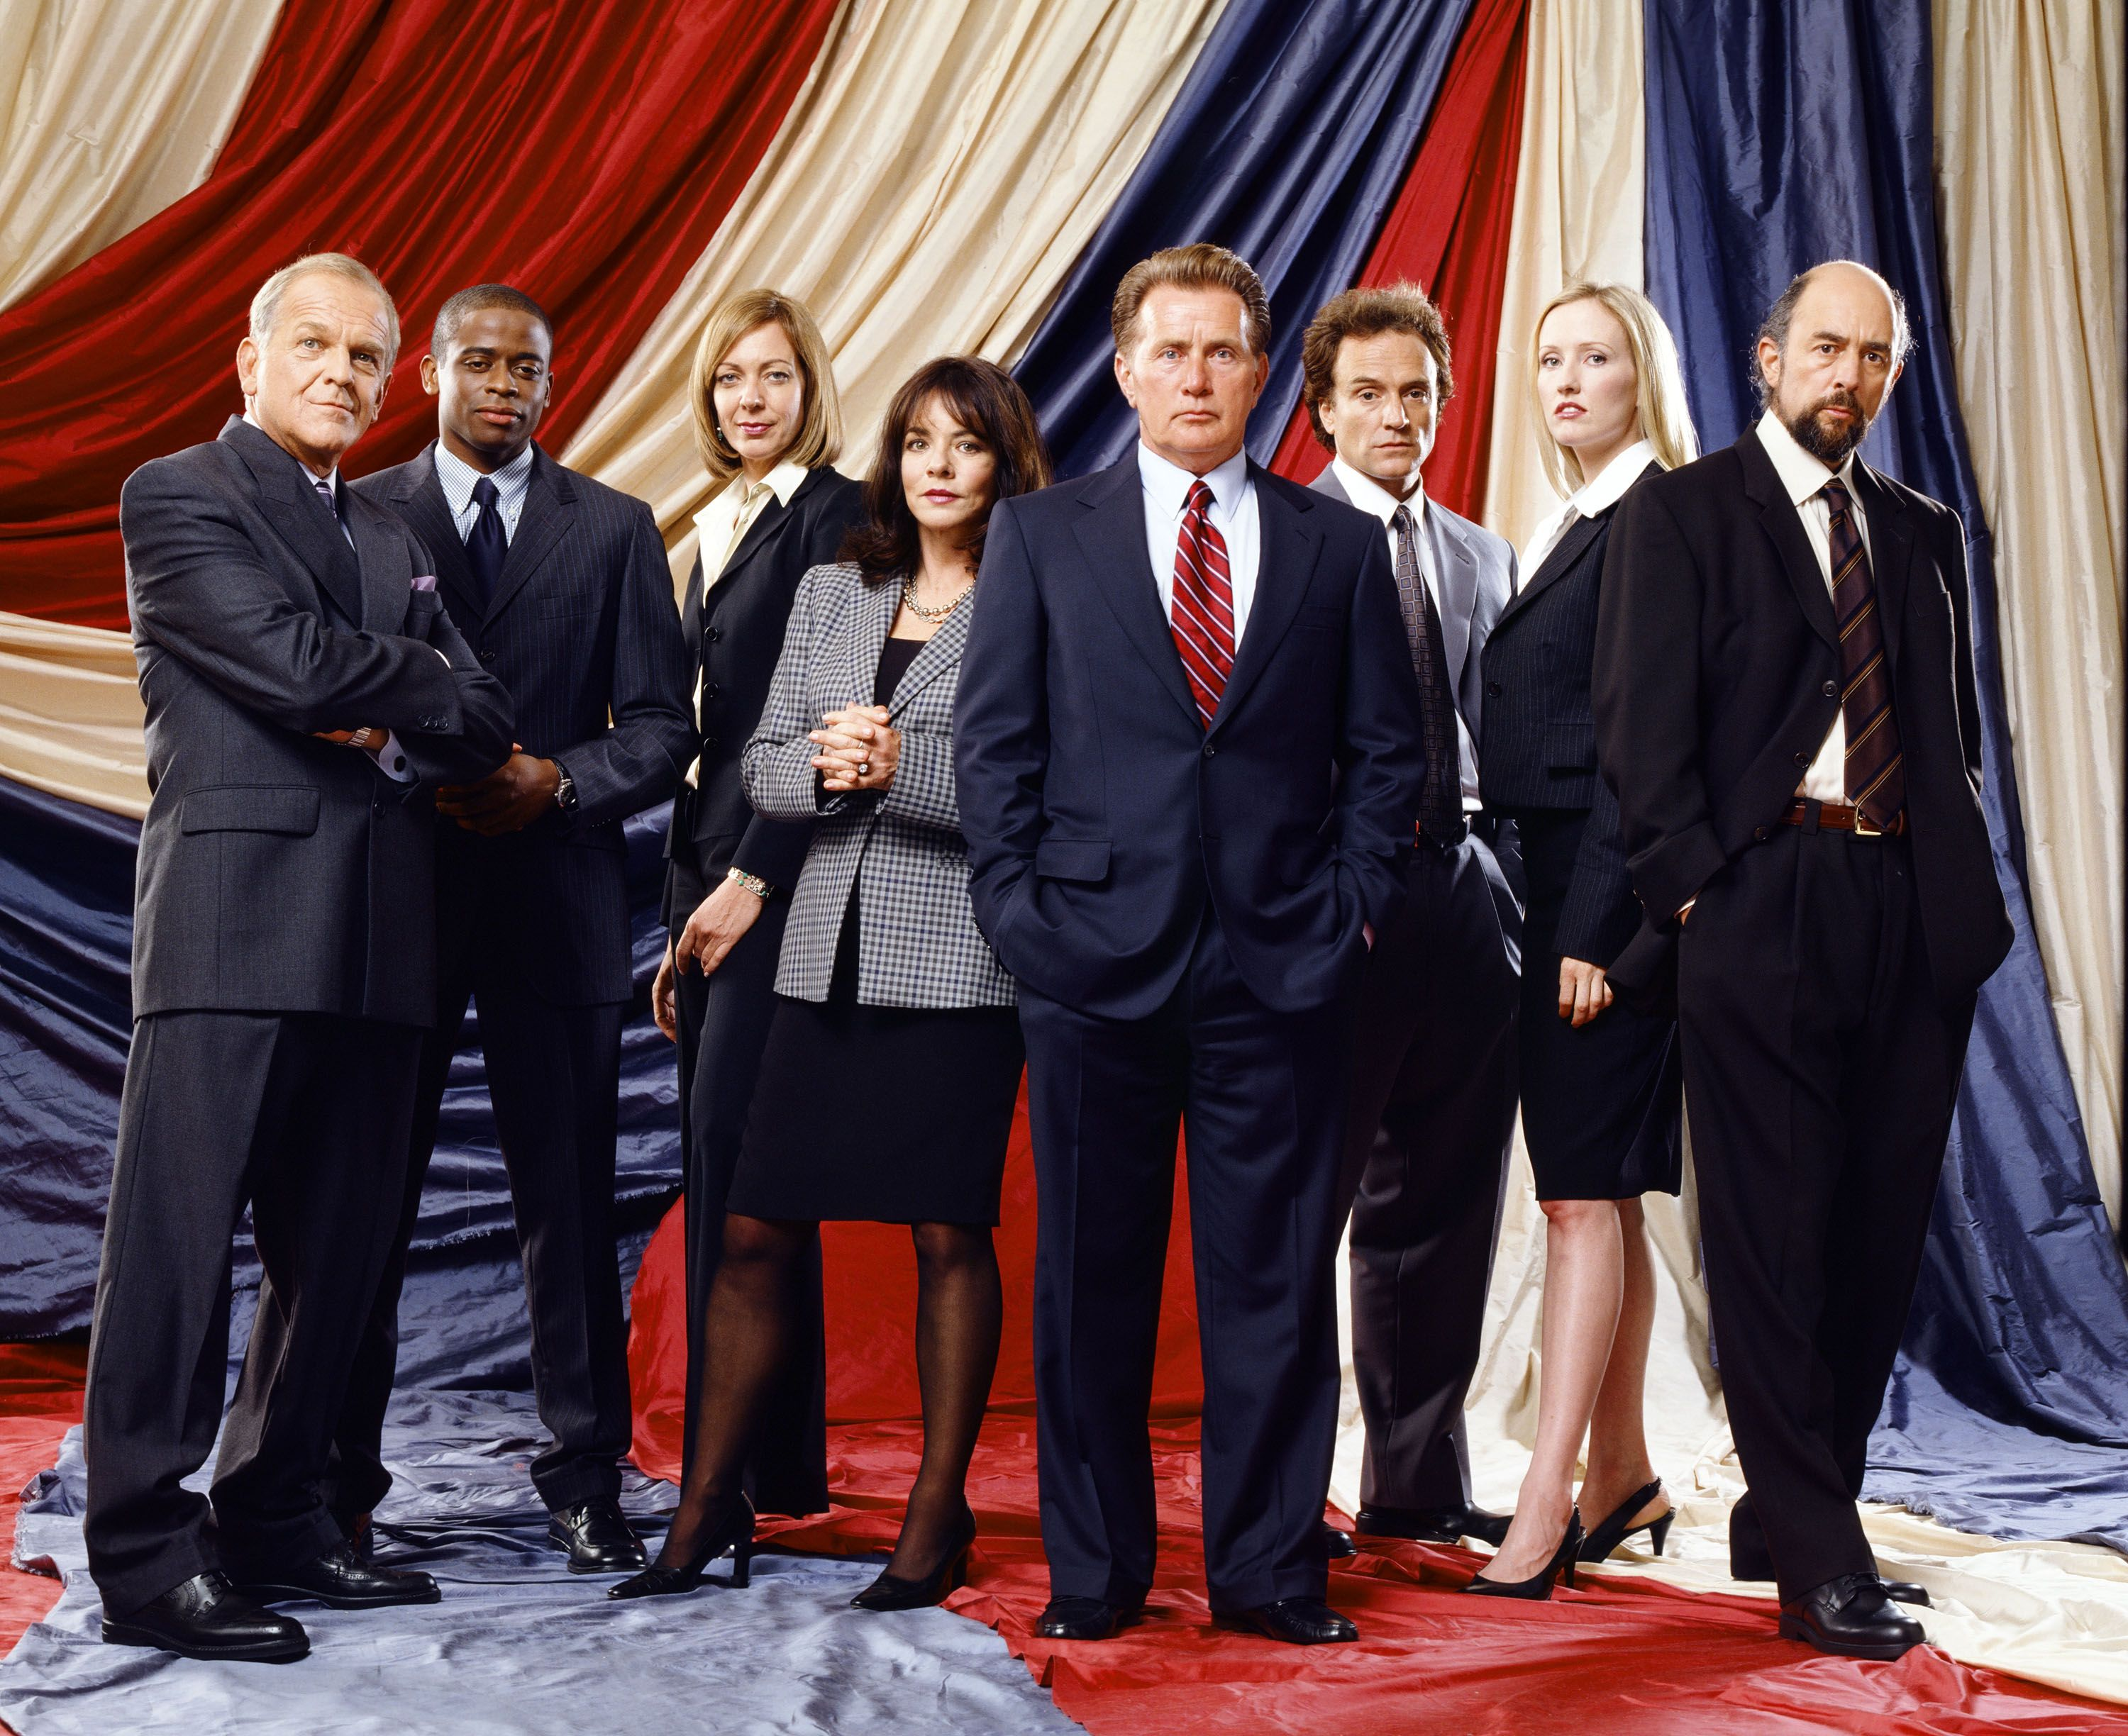 The West Wing Cast: Source: VOX.com